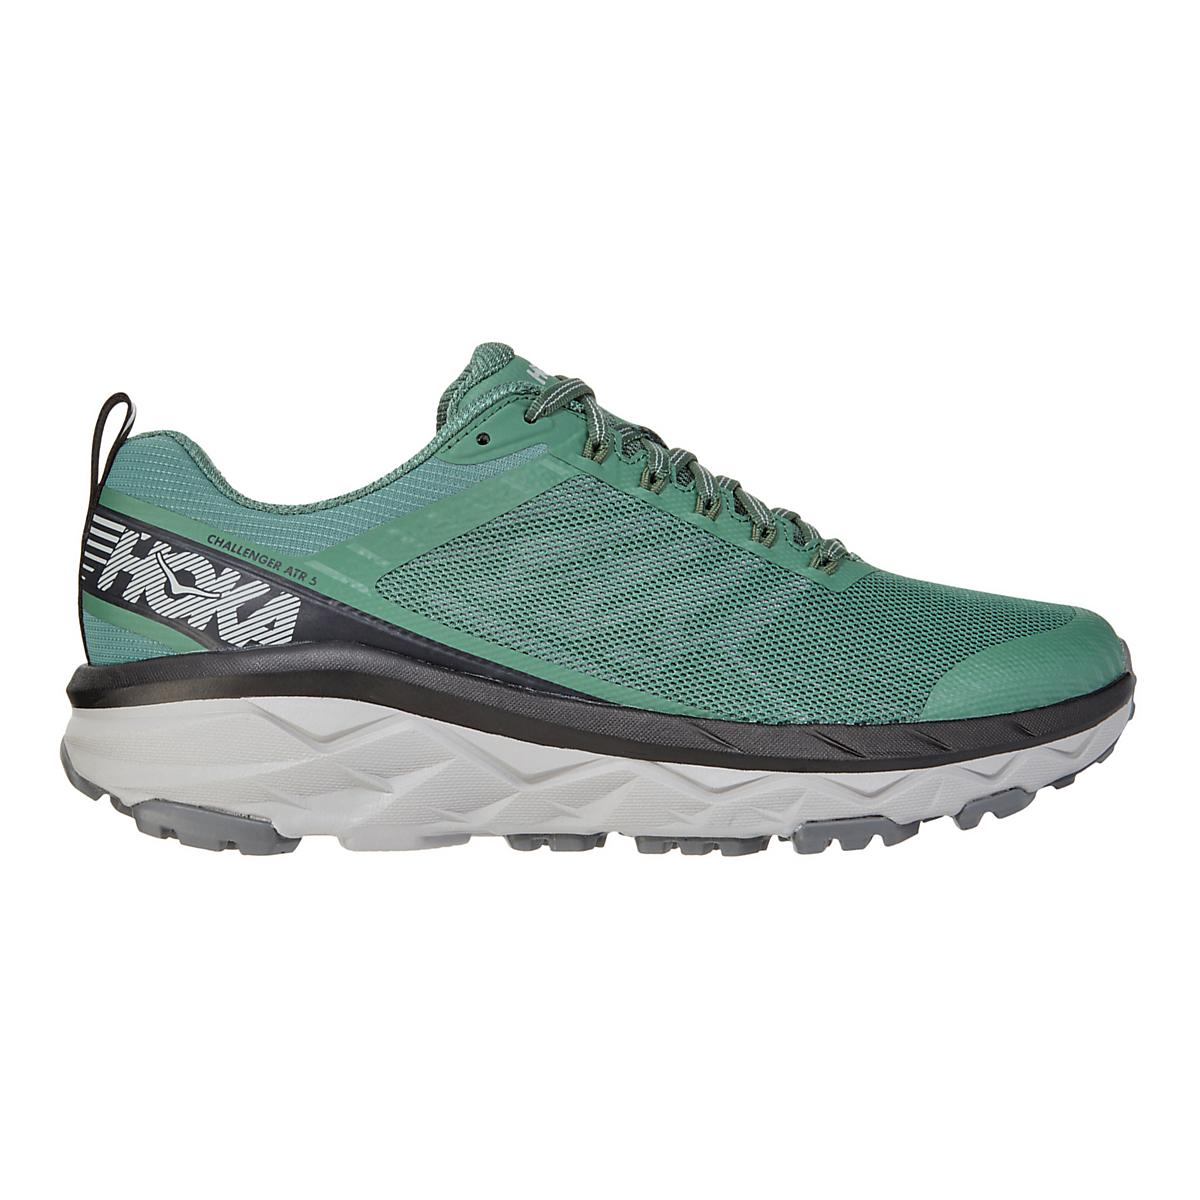 4bec3fed678f6 Mens Hoka One One Challenger ATR 5 Trail Running Shoe at Road Runner Sports